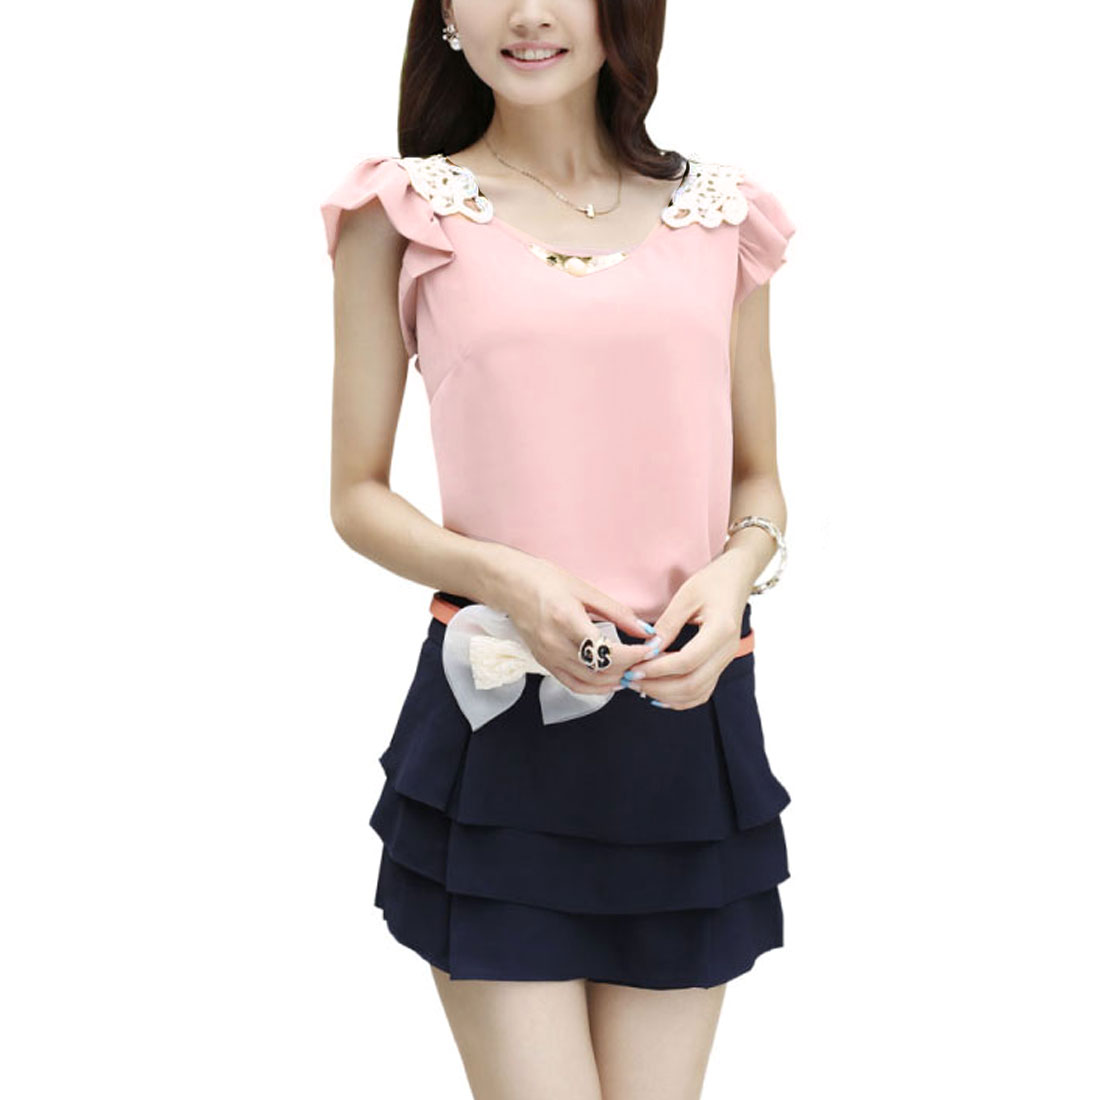 Ladies Round Neck Cap Sleeve Round Hem Casual Blouse Pink XS